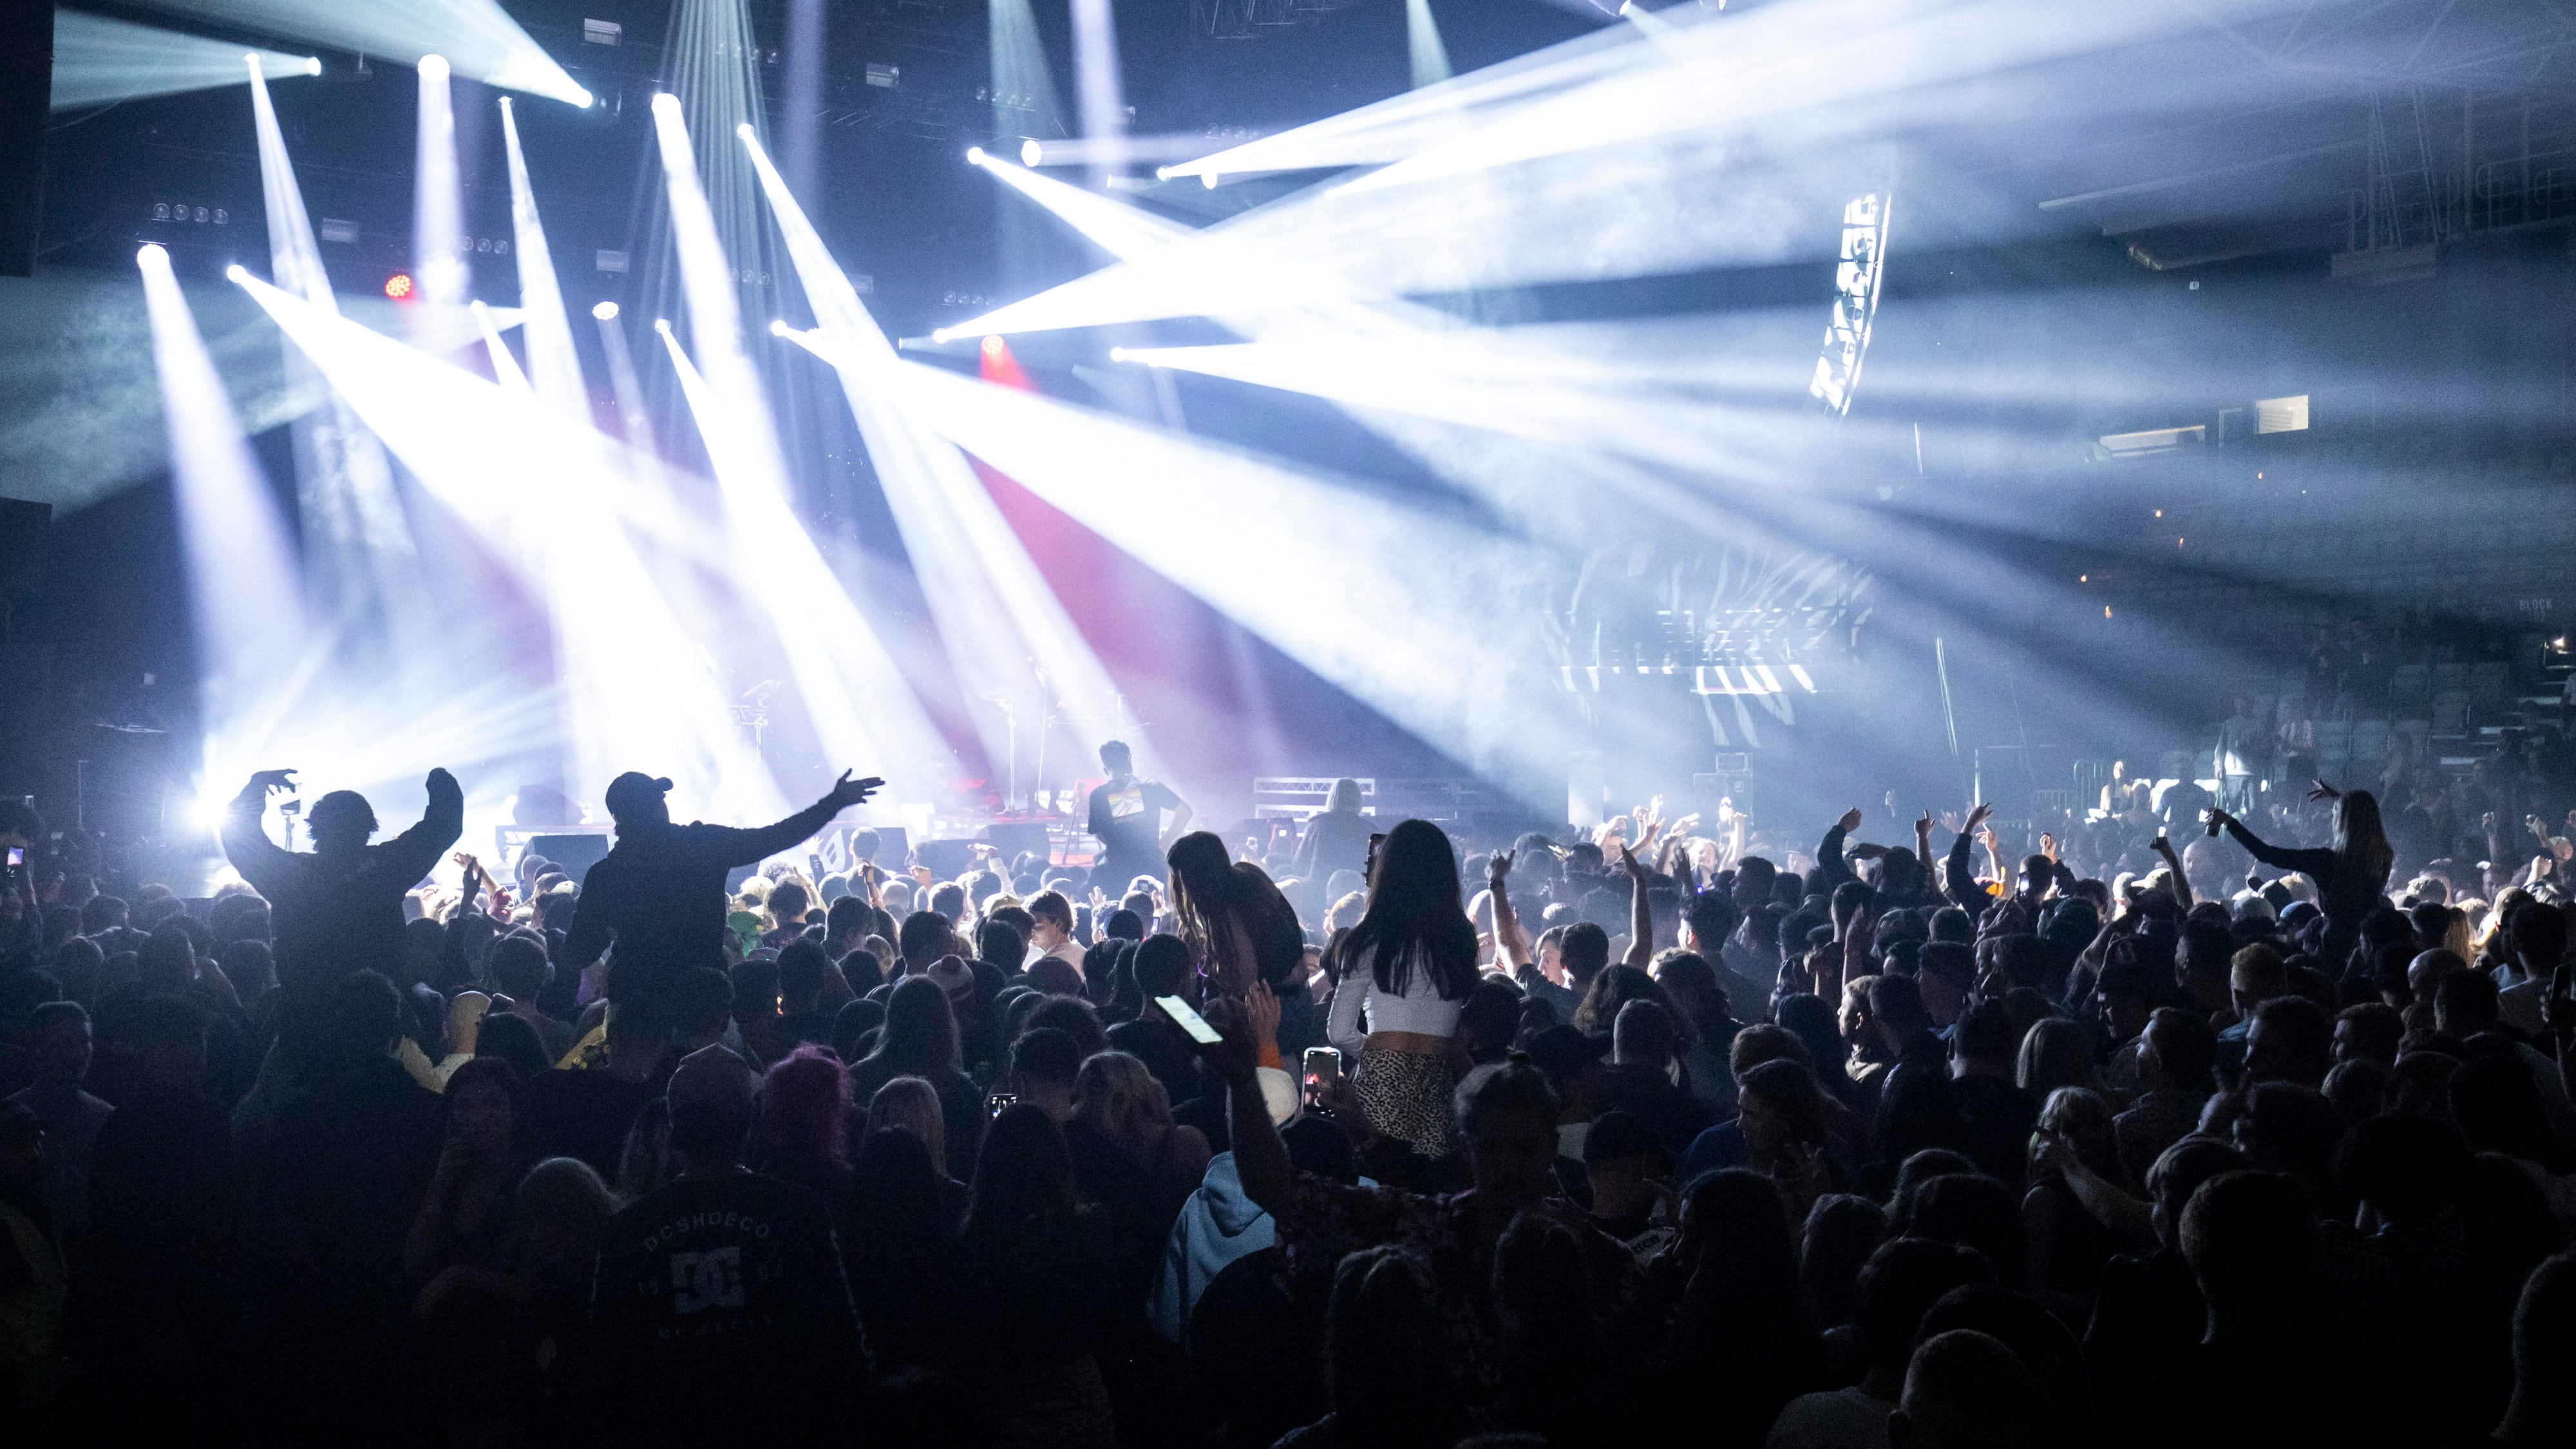 AEG Presents will require proof of COVID-19 vaccination for all upcoming concerts